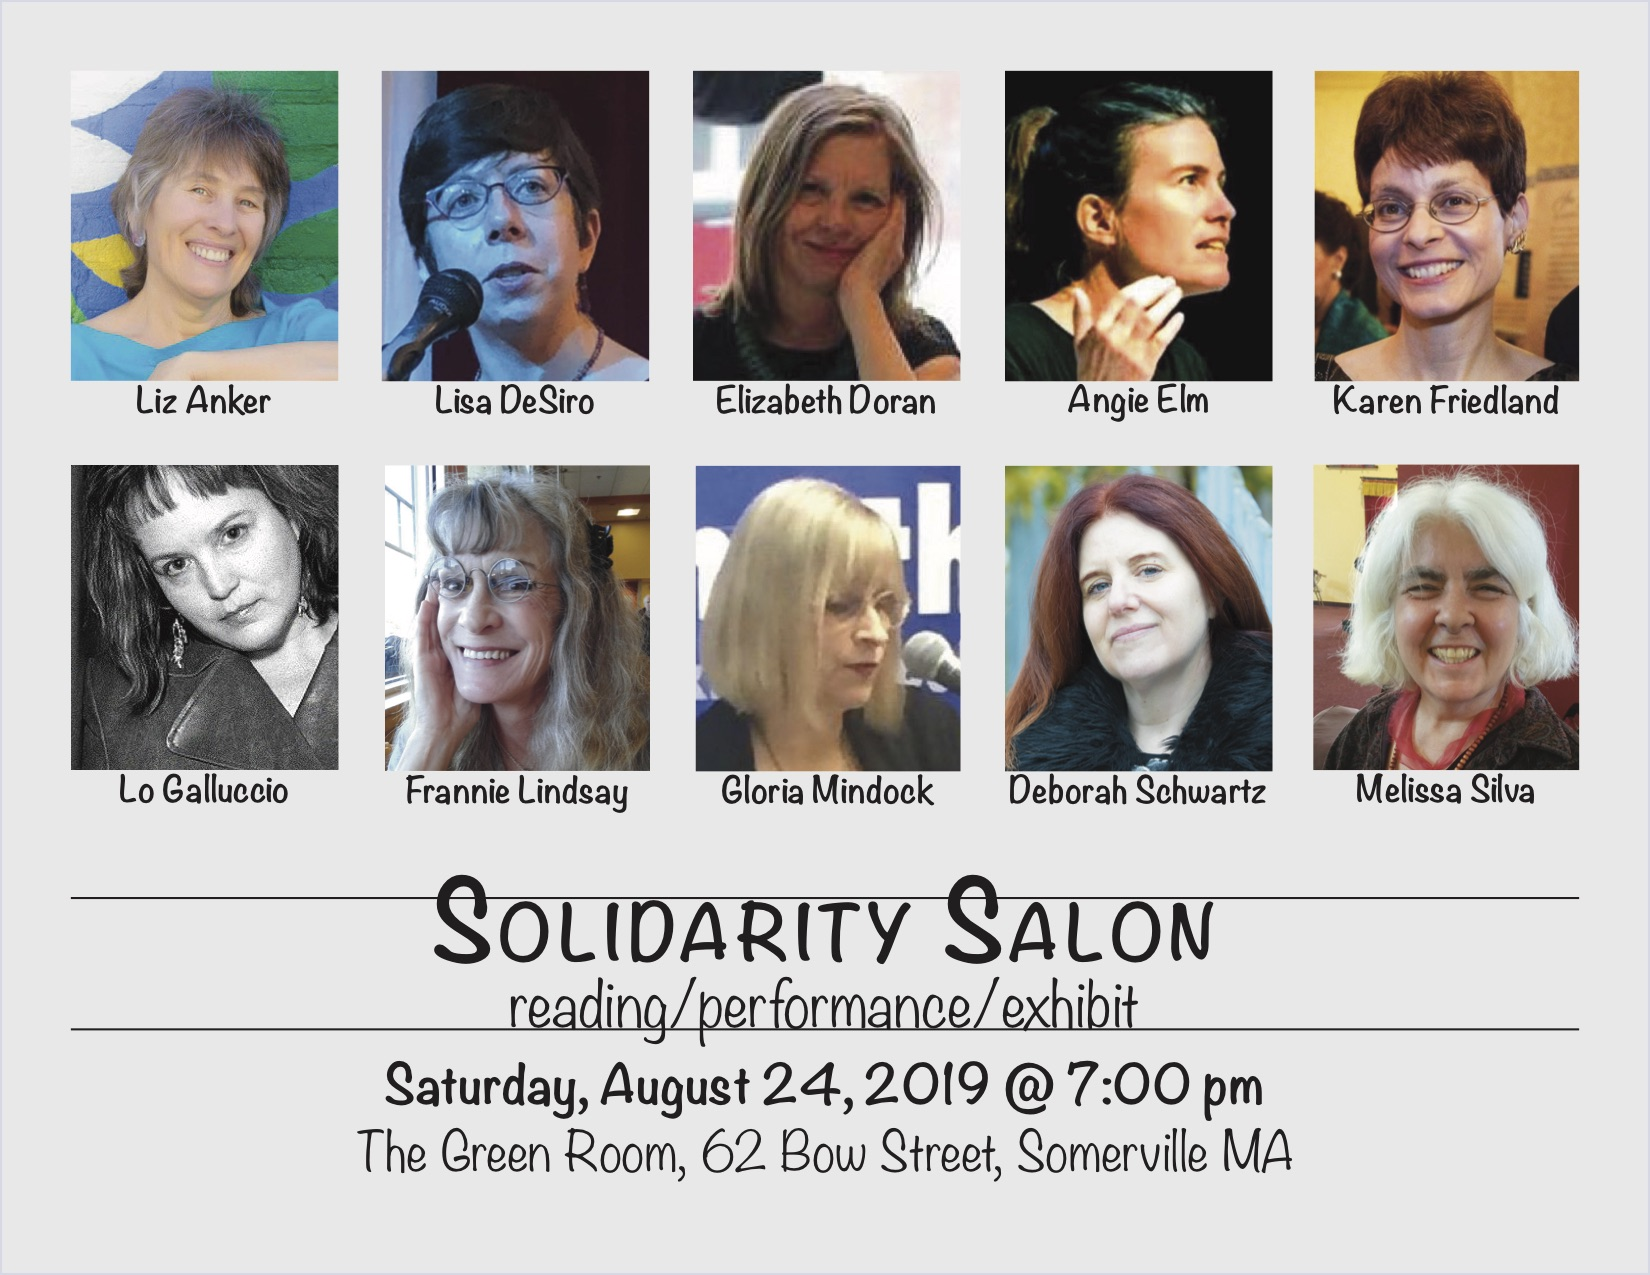 Solidarity Salon 8-24-19